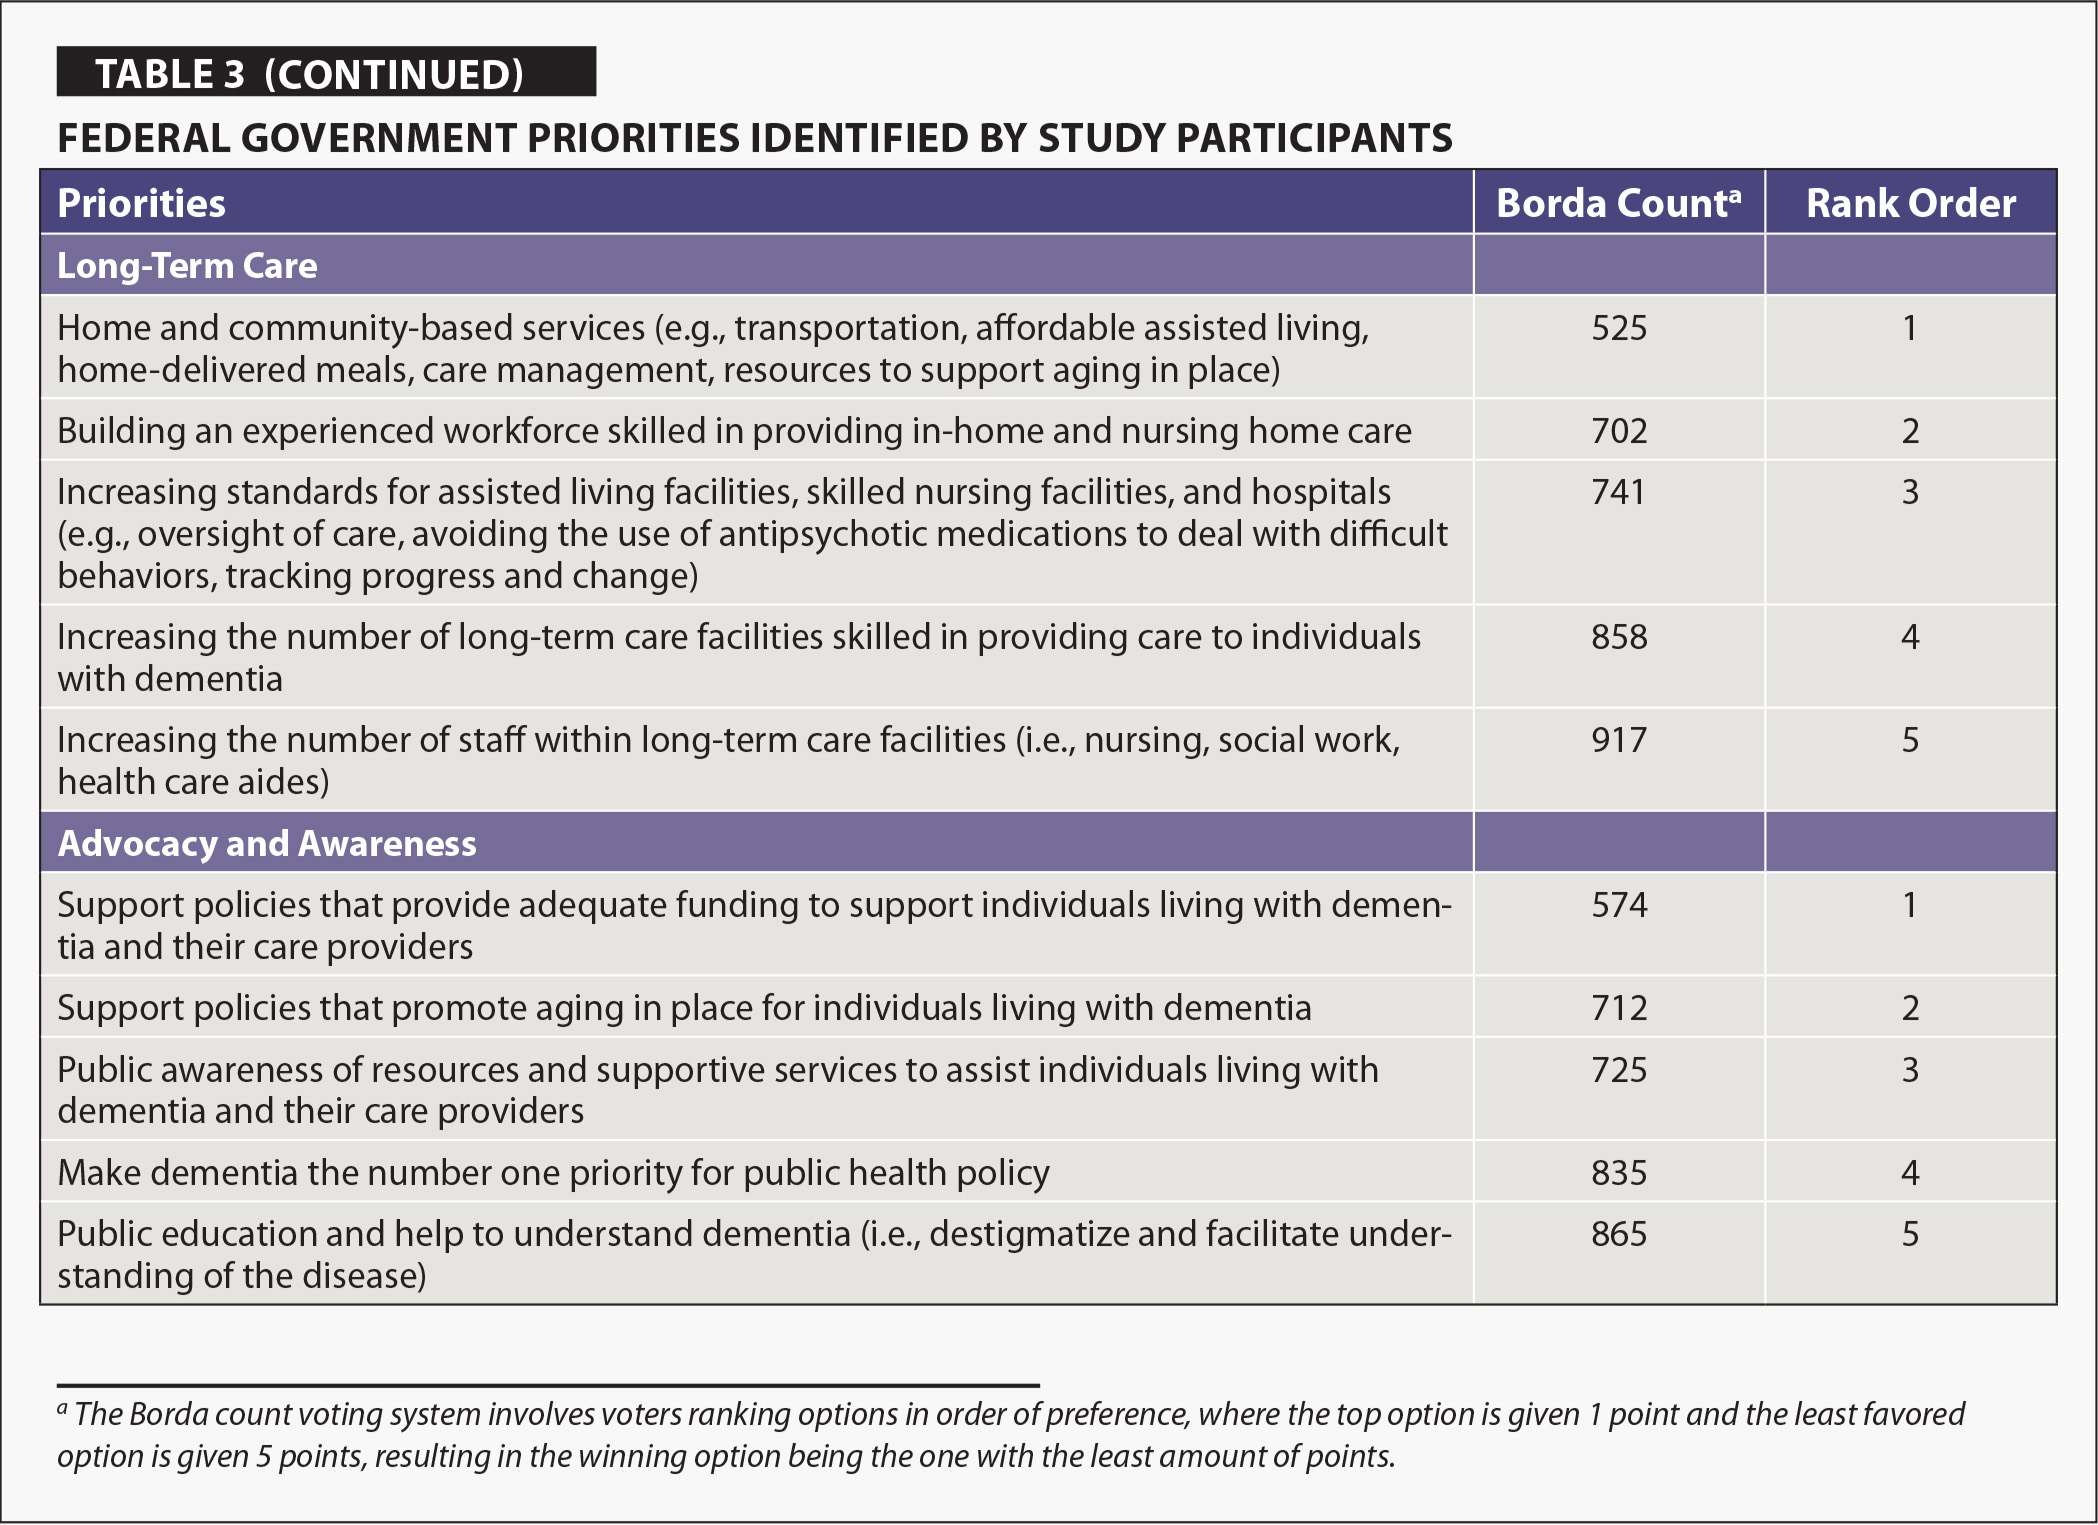 Federal Government Priorities Identified by Study Participants